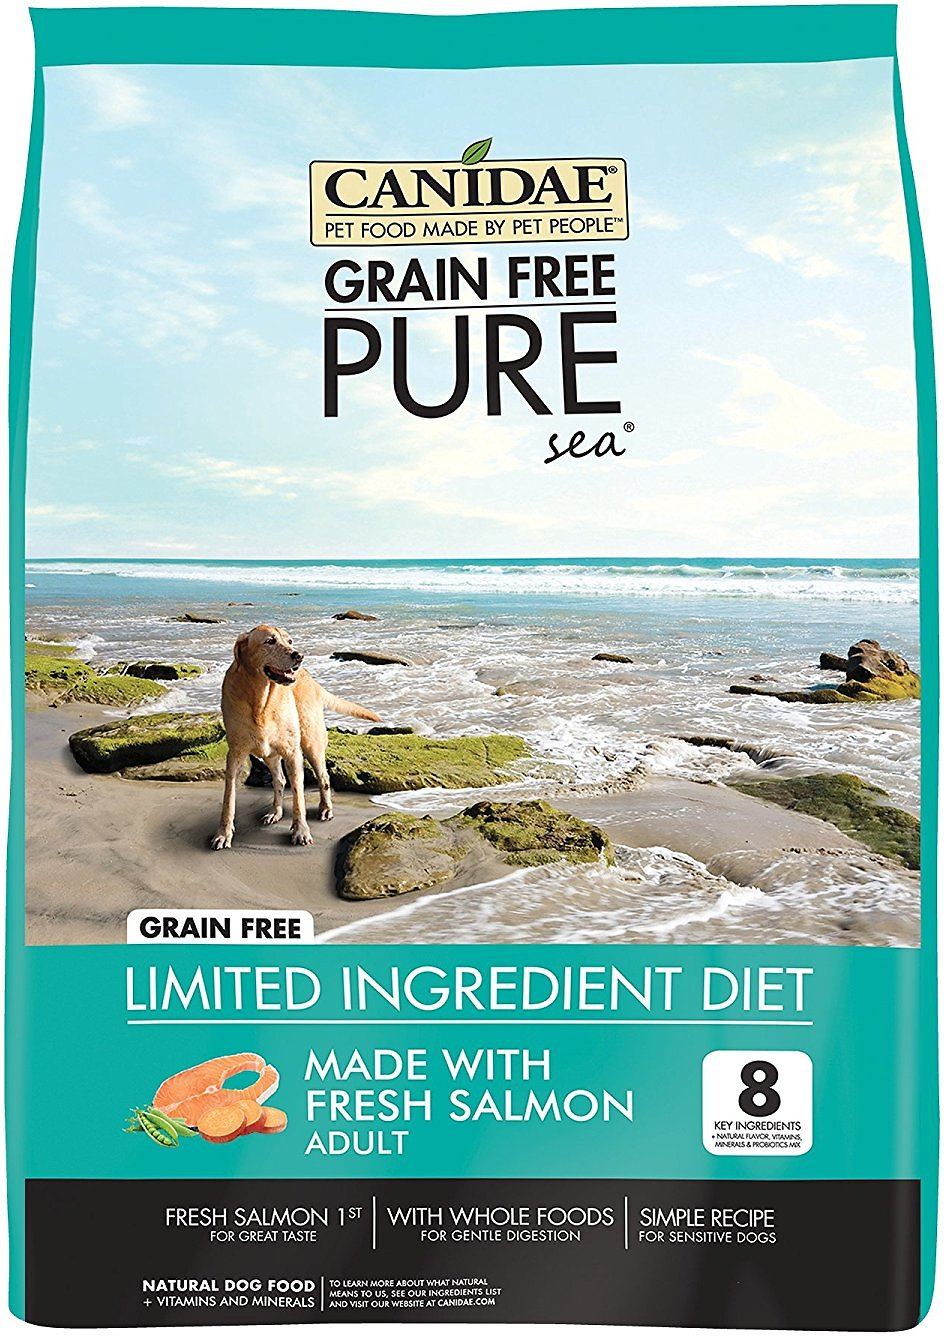 Canidae Pure Sea Dog Food